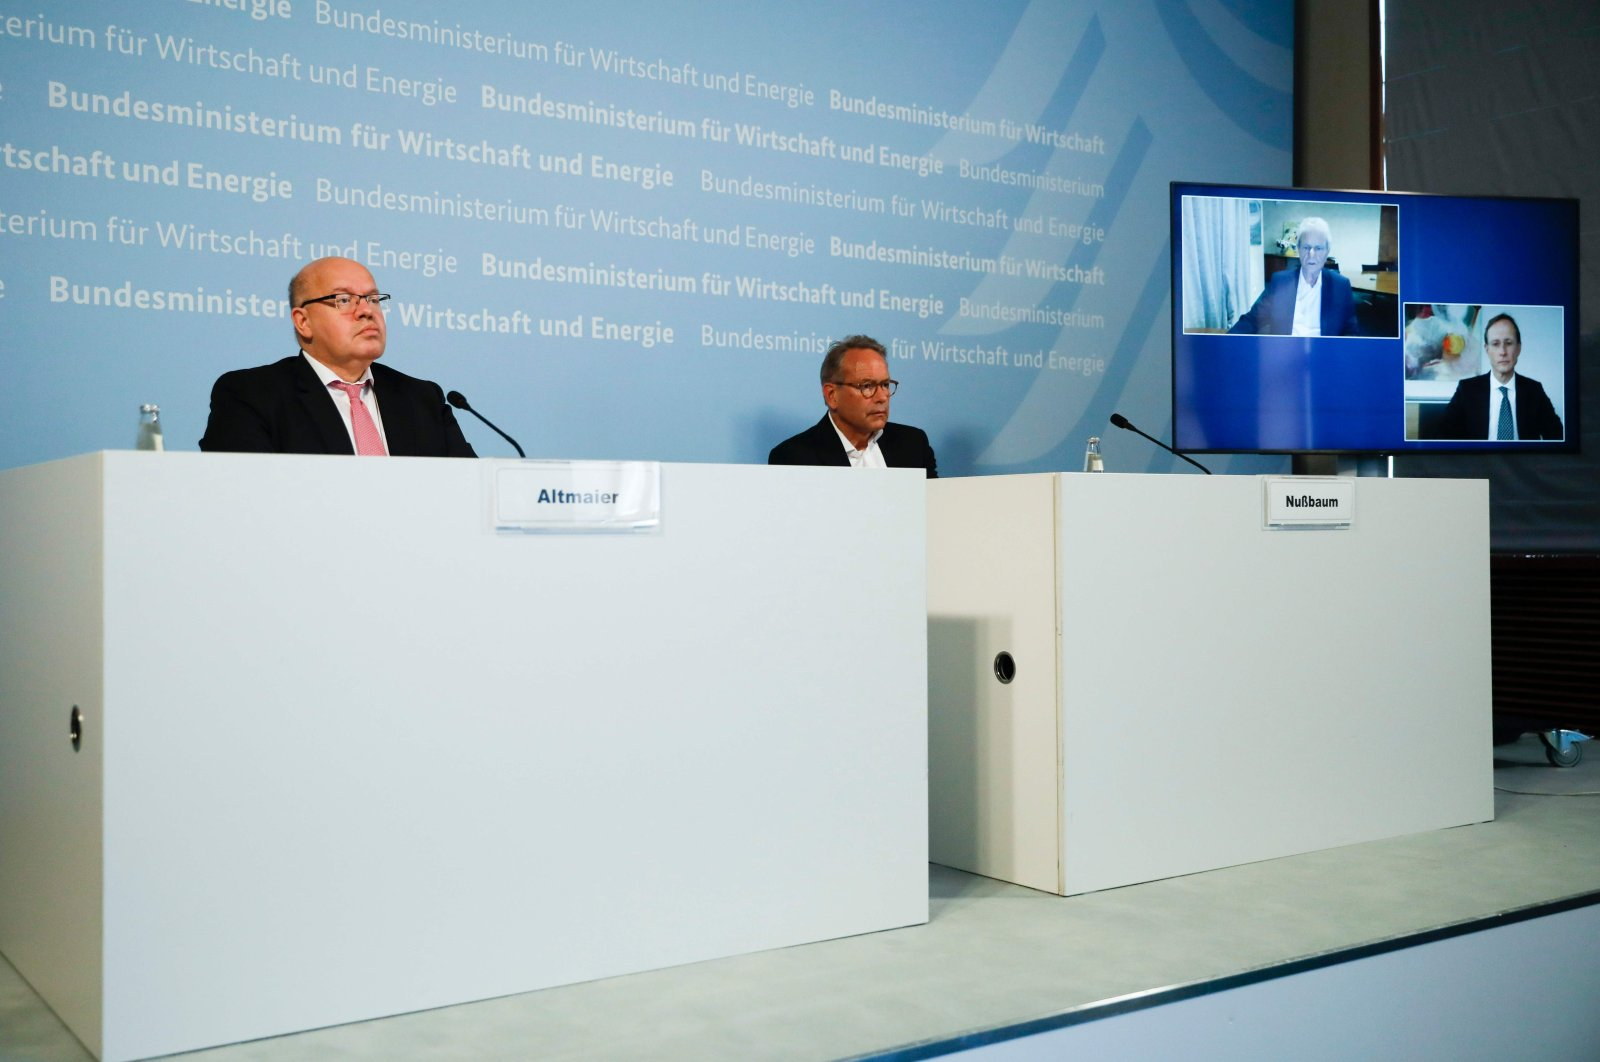 German Economy Minister Peter Altmaier (L), and state secretary at the economic ministry Ulrich Nussbaum (R) attend a news conference with CureVac main shareholder Dietmar Hopp (on the screen left) at the economy ministry in Berlin, June 15, 2020. (AFP Photo)